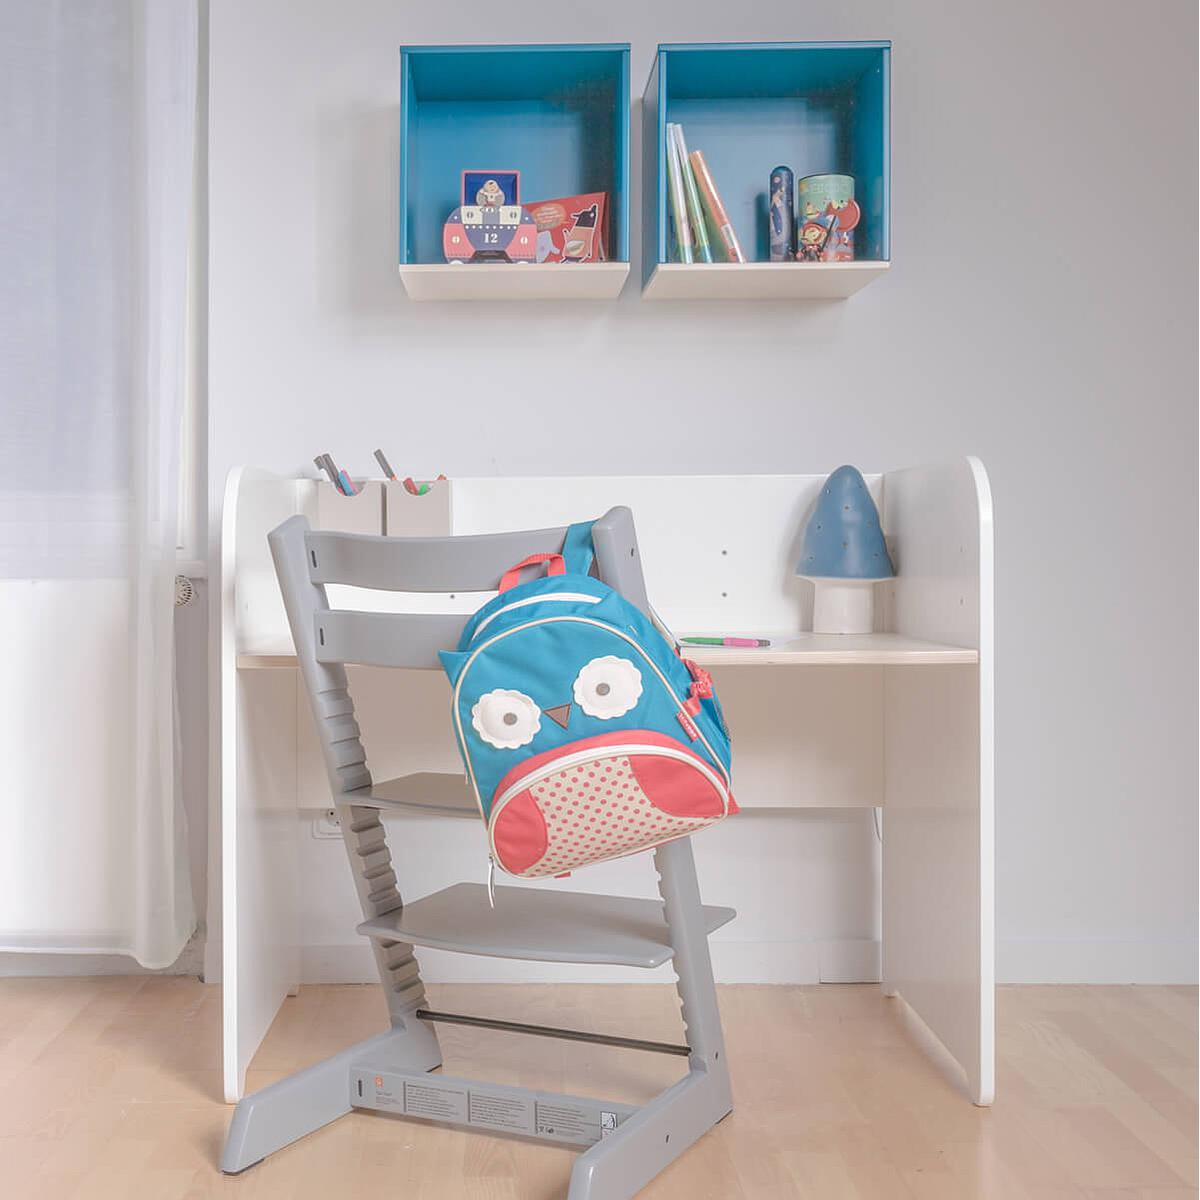 Cube mural COLORFLEX Abitare Kids sky blue